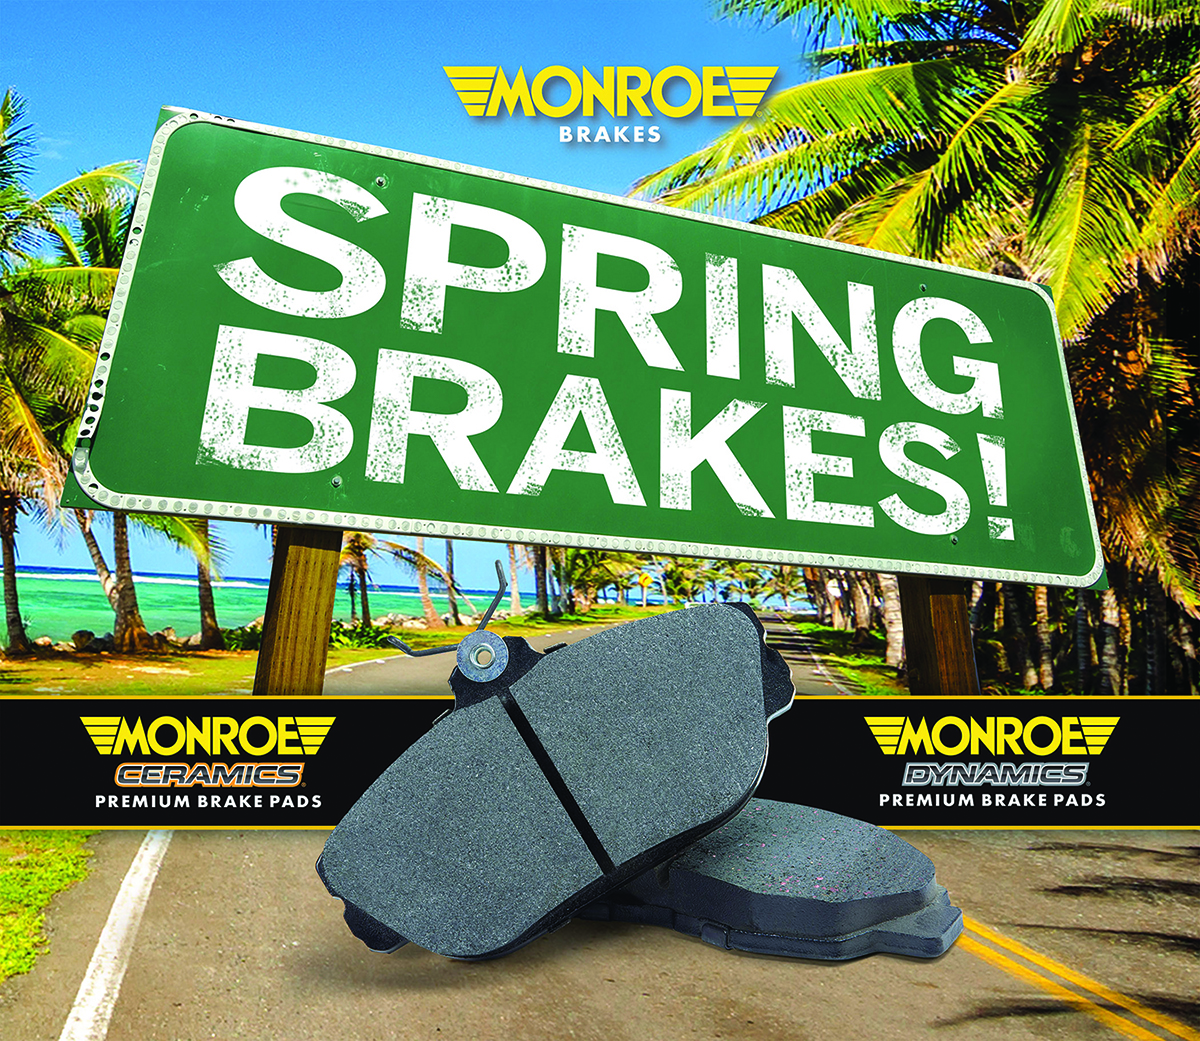 Monroe 'Spring Brakes!' promotion lasts through May